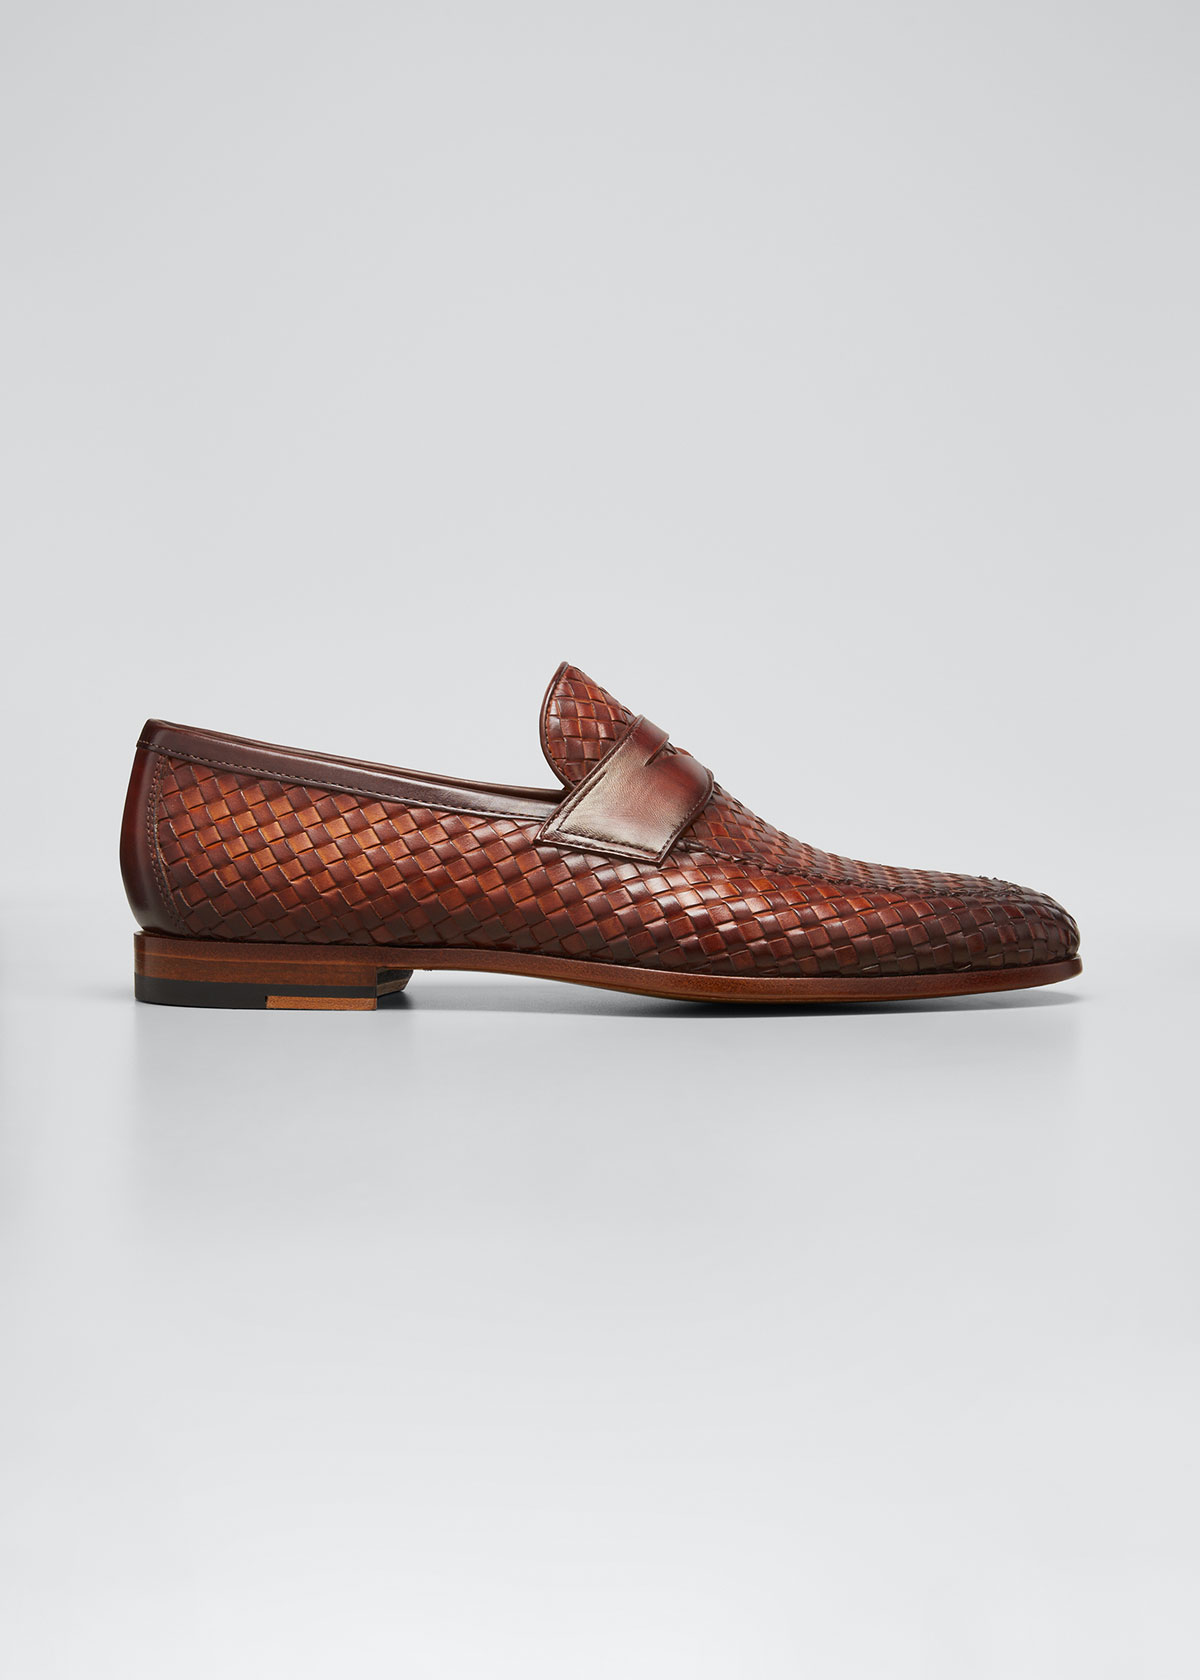 Magnanni MEN'S WOVEN LEATHER PENNY LOAFERS